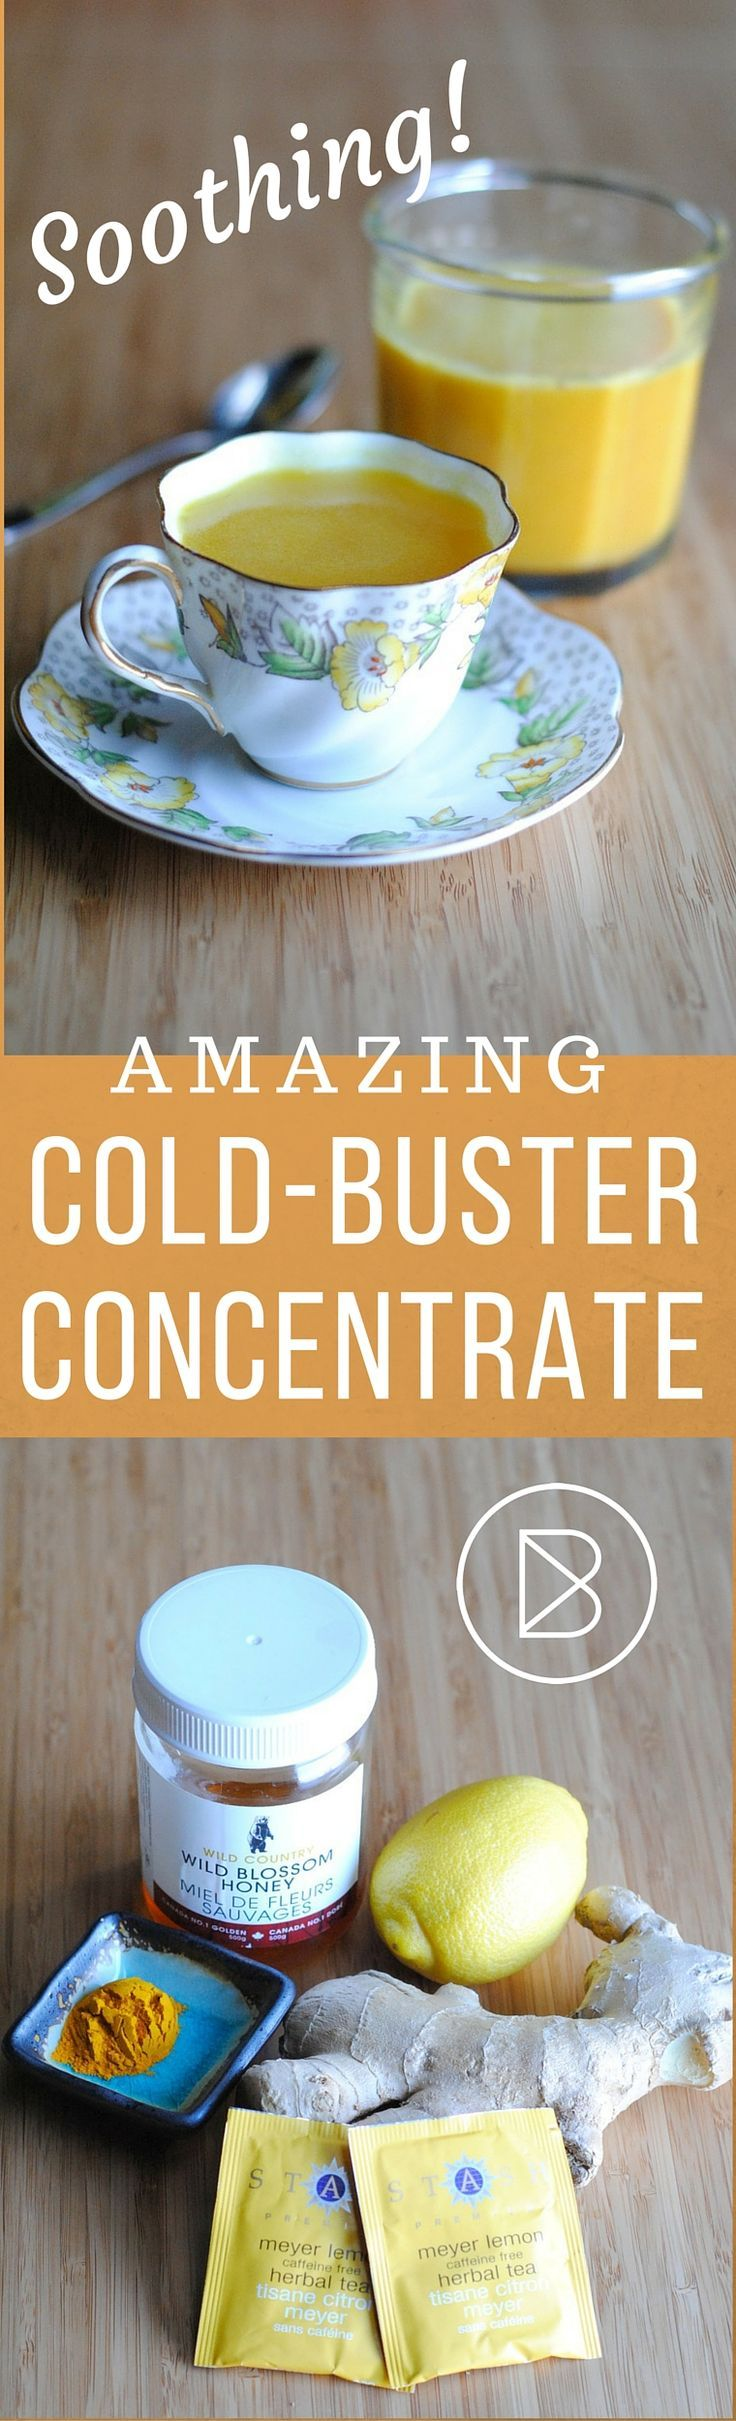 "This concentrated cold-buster is a great non-medical alternative to theraflu, lemsip or neocitrin. It really helps soothe a sore throat. You can easily ""veganize"" it by replacing the honey with maple syrup. Stay healthy! - Jasmine"